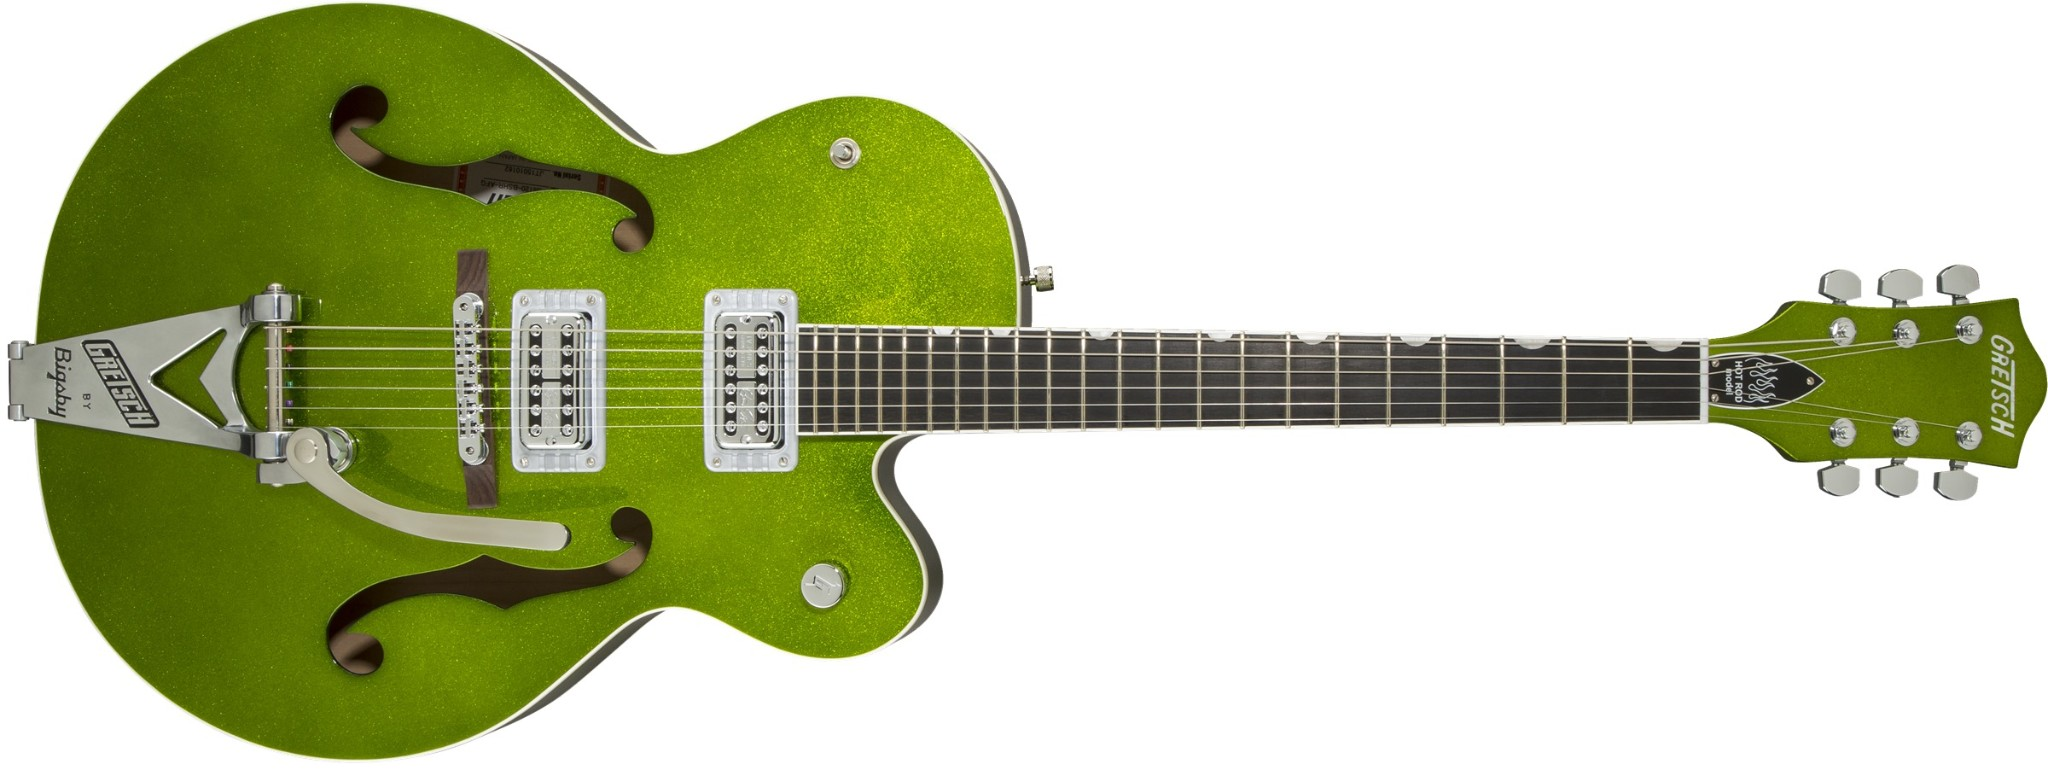 Gretsch G6120SH Brian Setzer Hot Rod  …